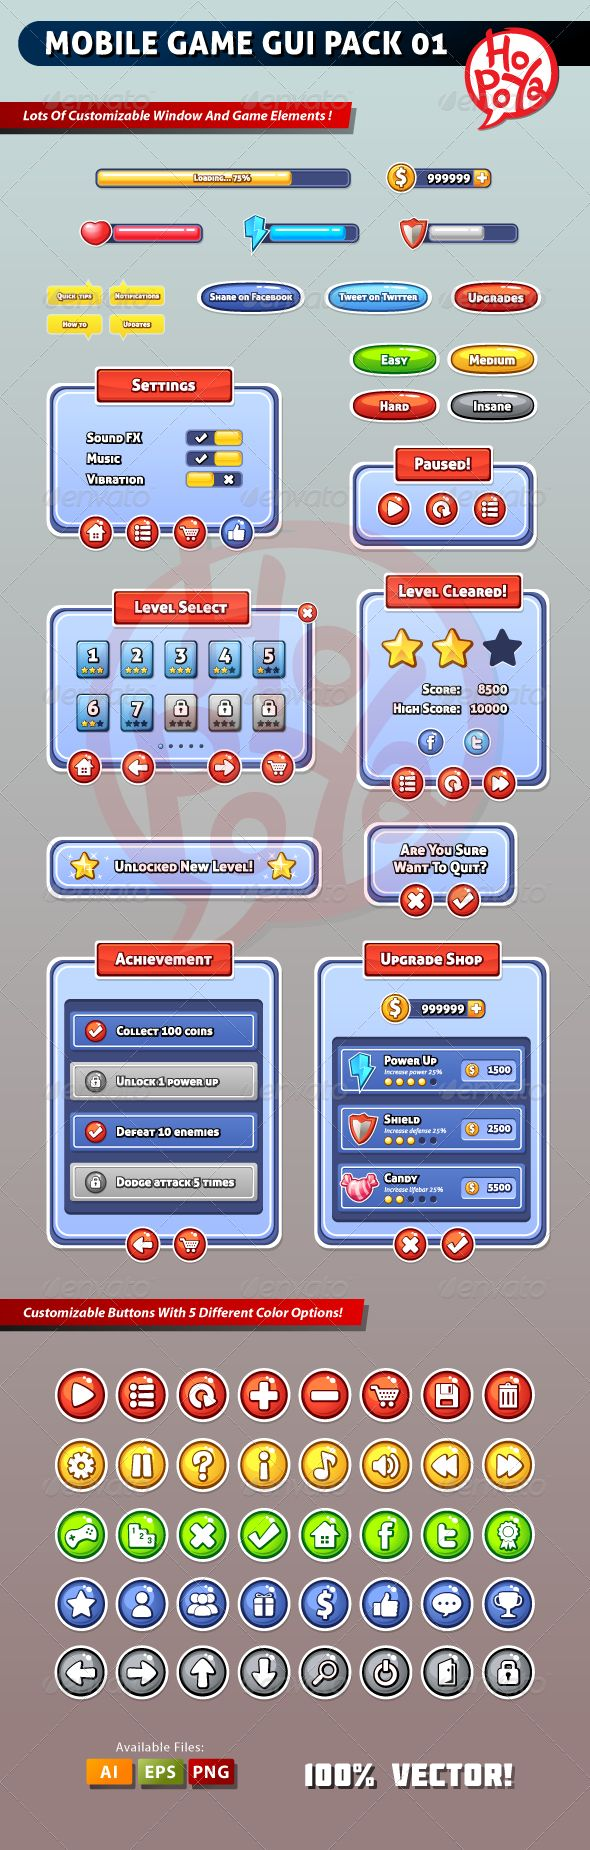 Mobile Game GUI Pack 01 - Web Elements Vectors